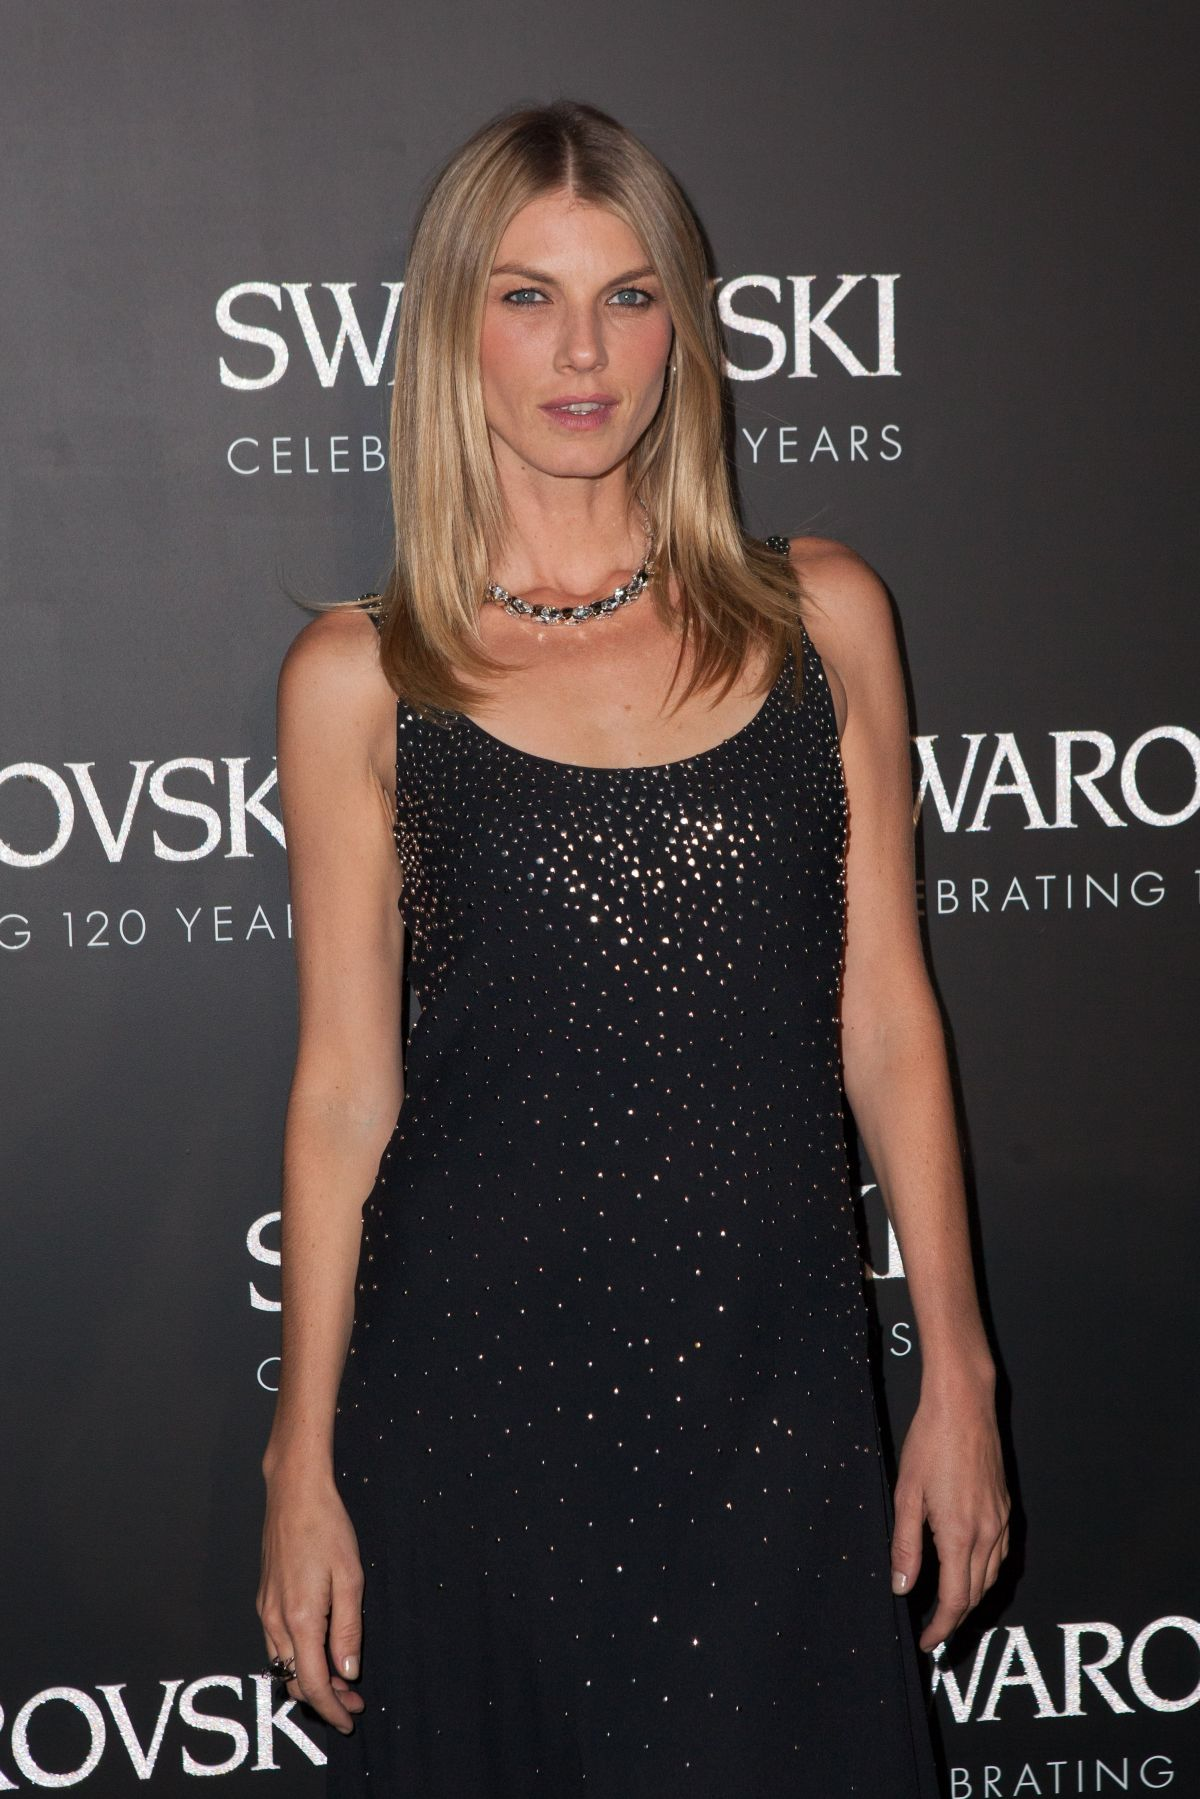 ANGELA LINDVALL at Swarovski 120 x Rizzoli Exhibition and Cocktail in Paris 09/30/2015